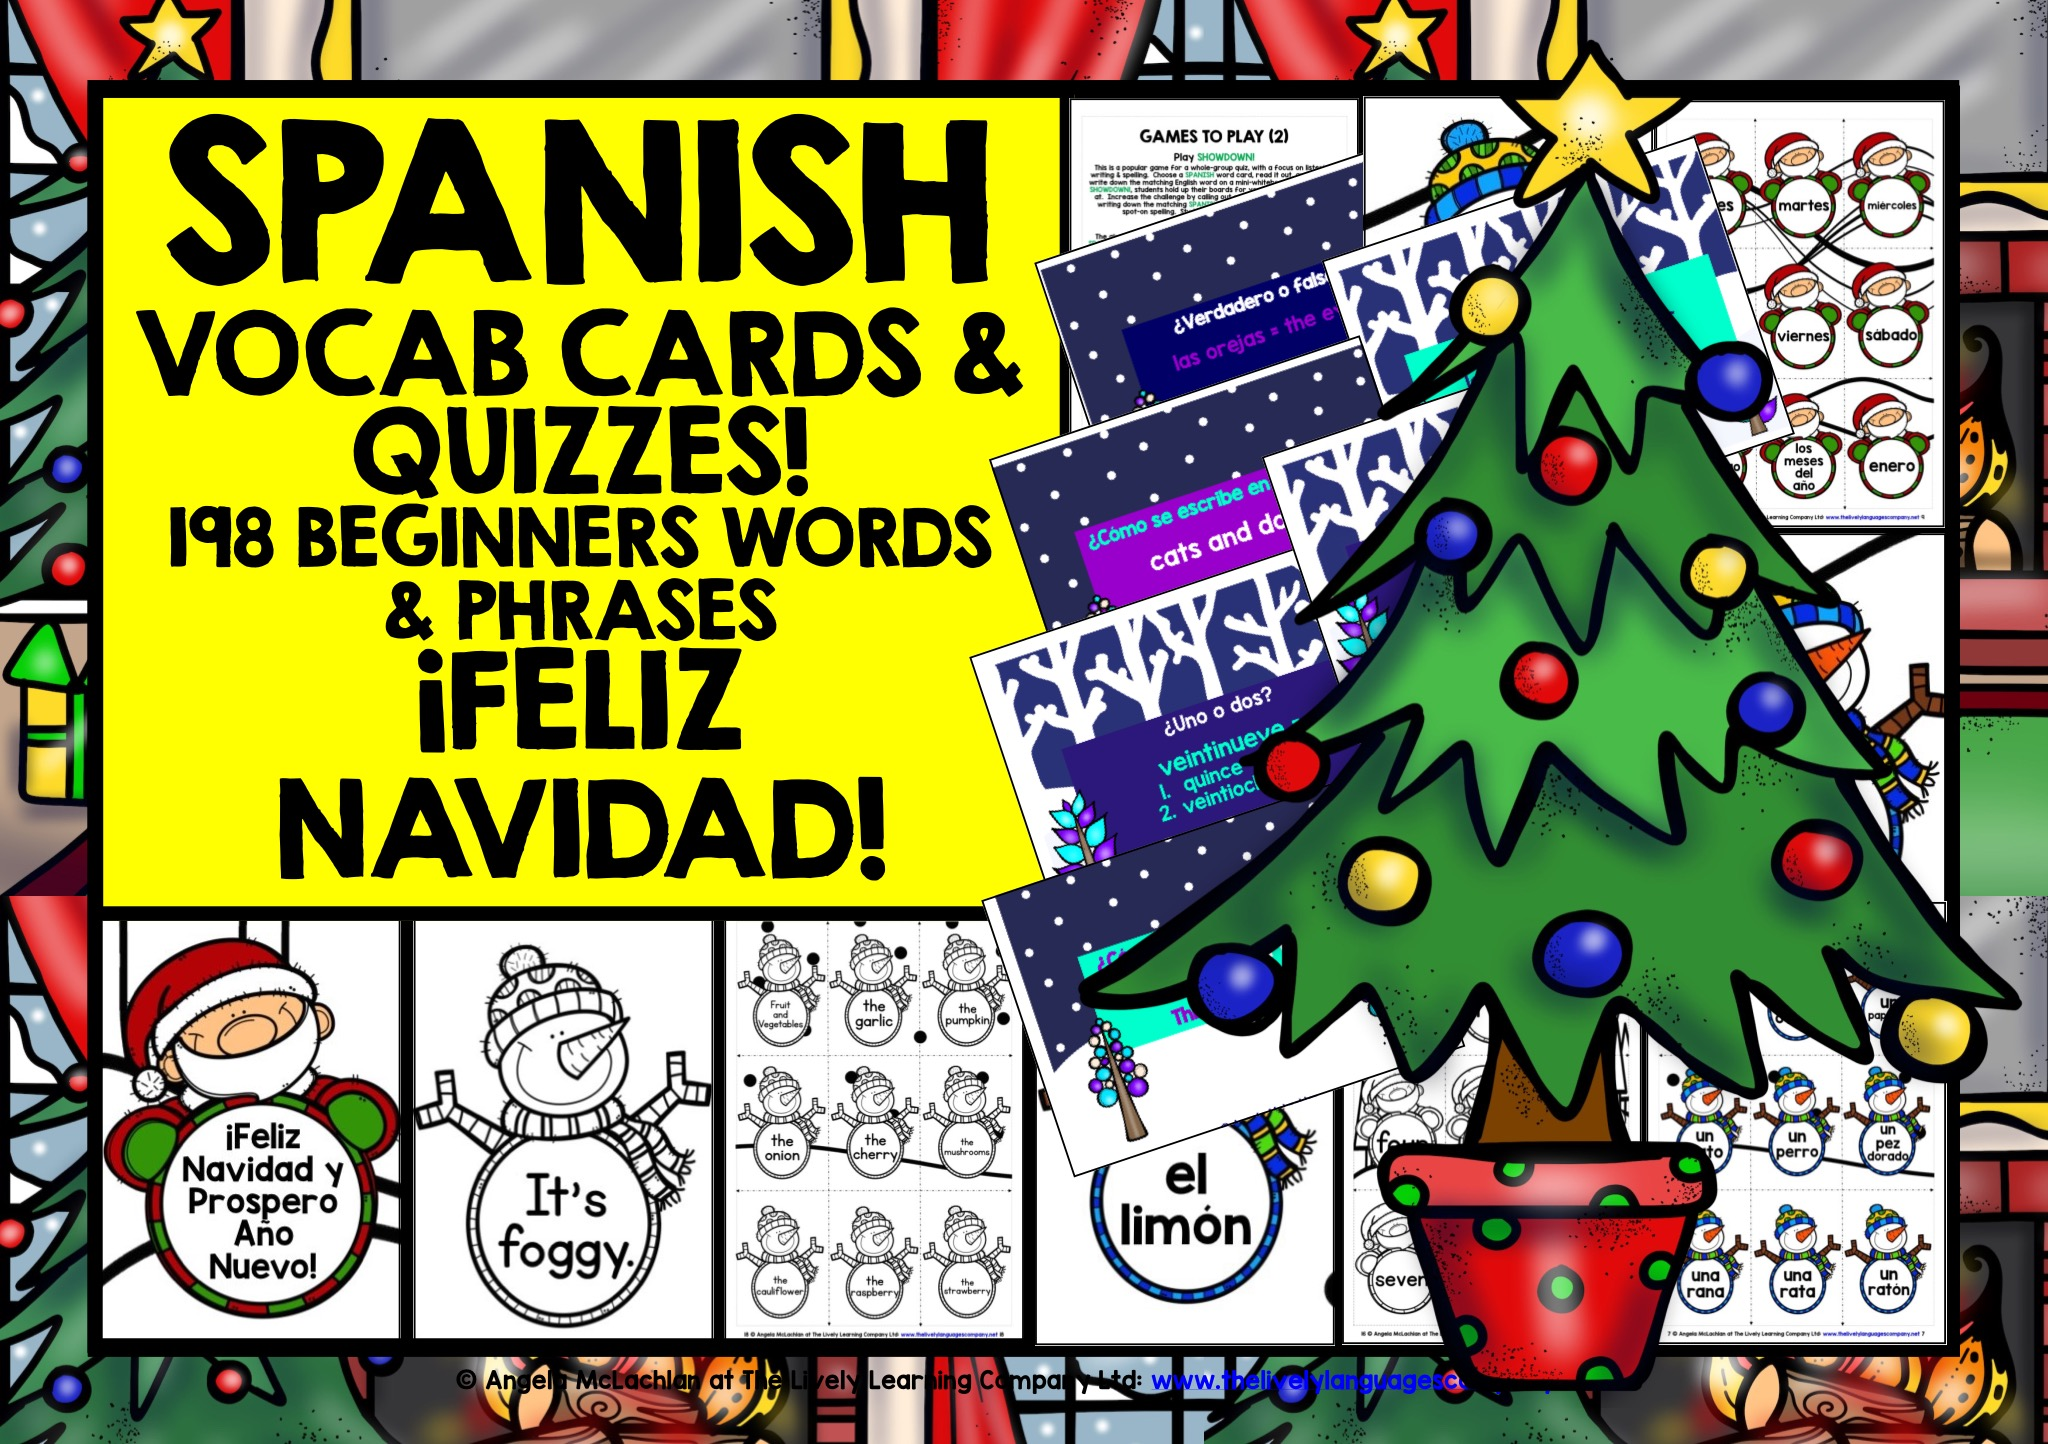 Christmas Eve In Spanish.Christmas Spanish Vocabulary Cards Quizzes